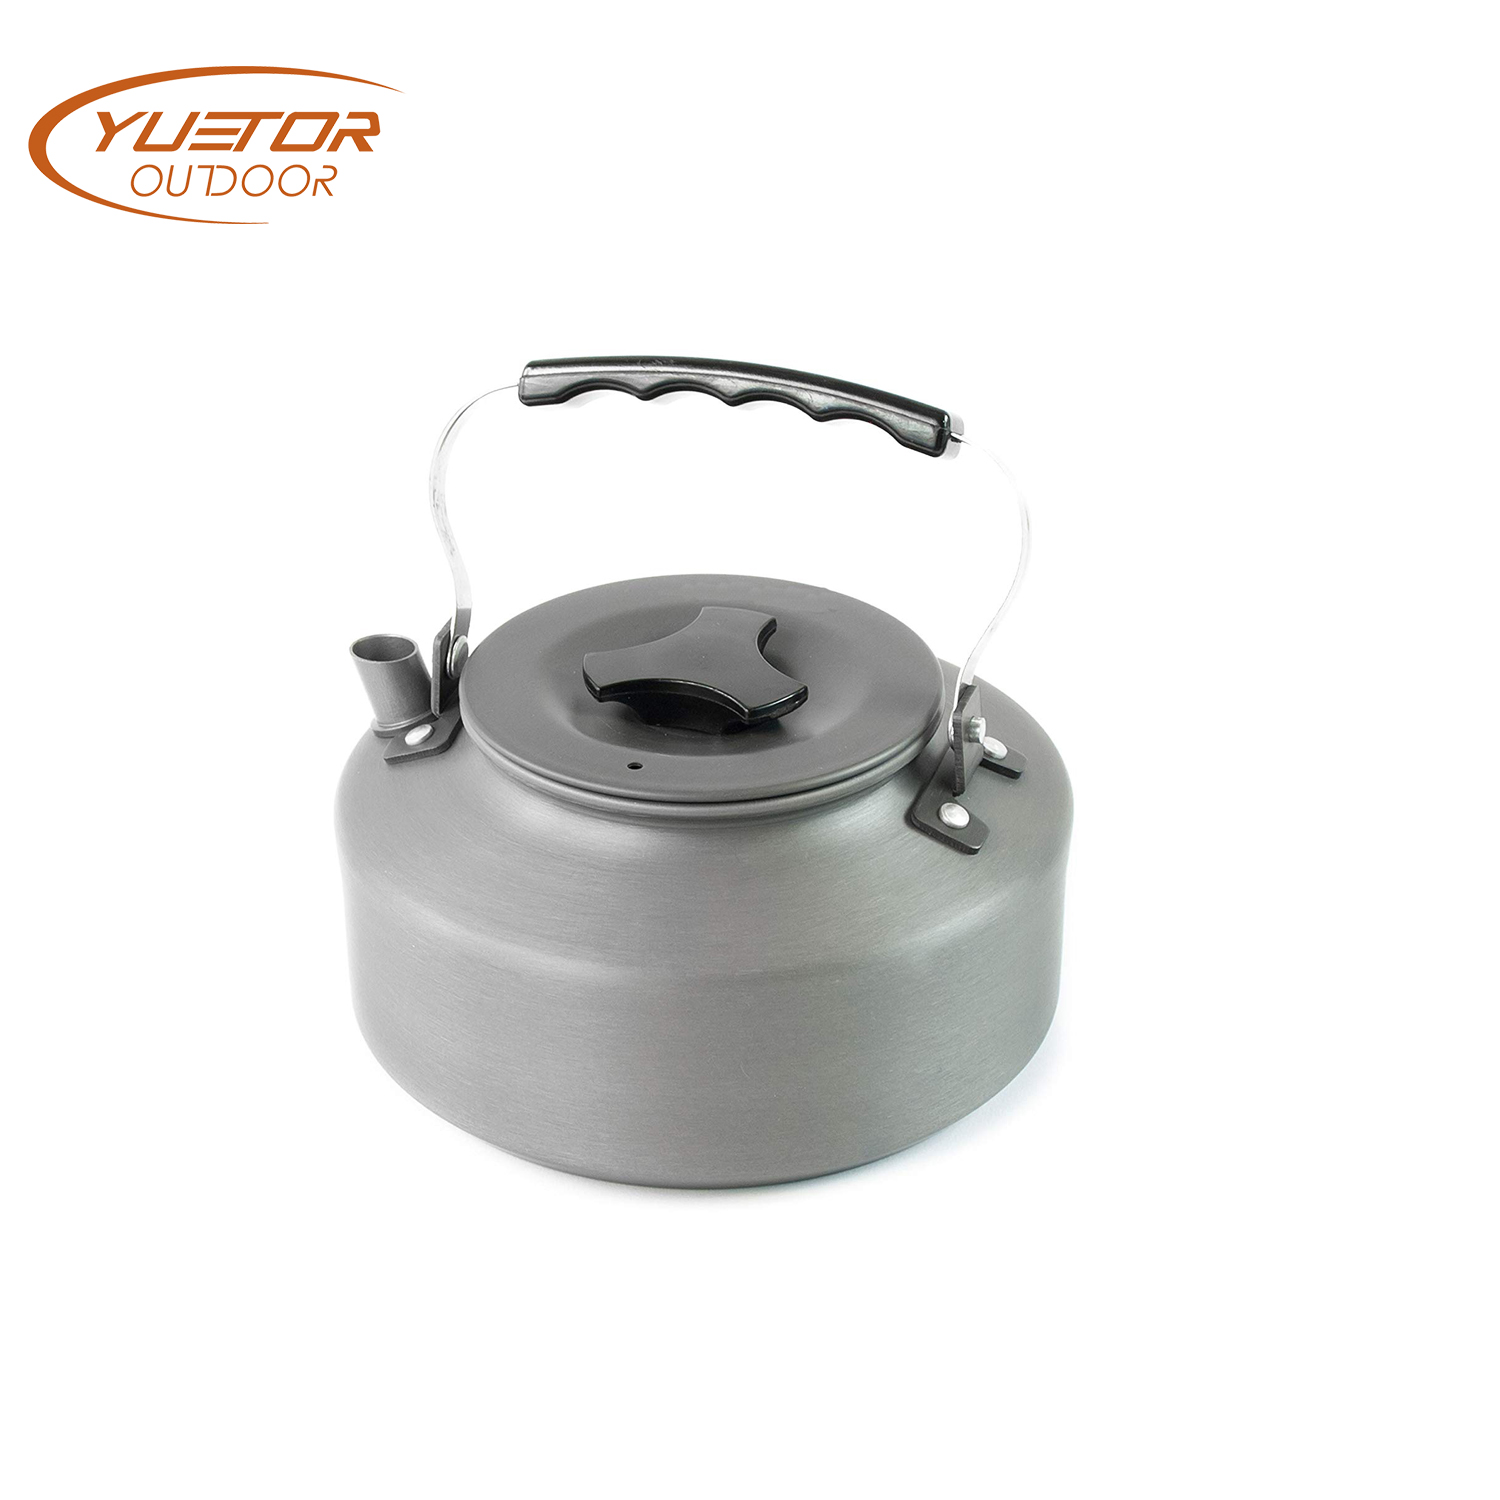 8 PIECES Easy to storage ultralight backpacking cookware